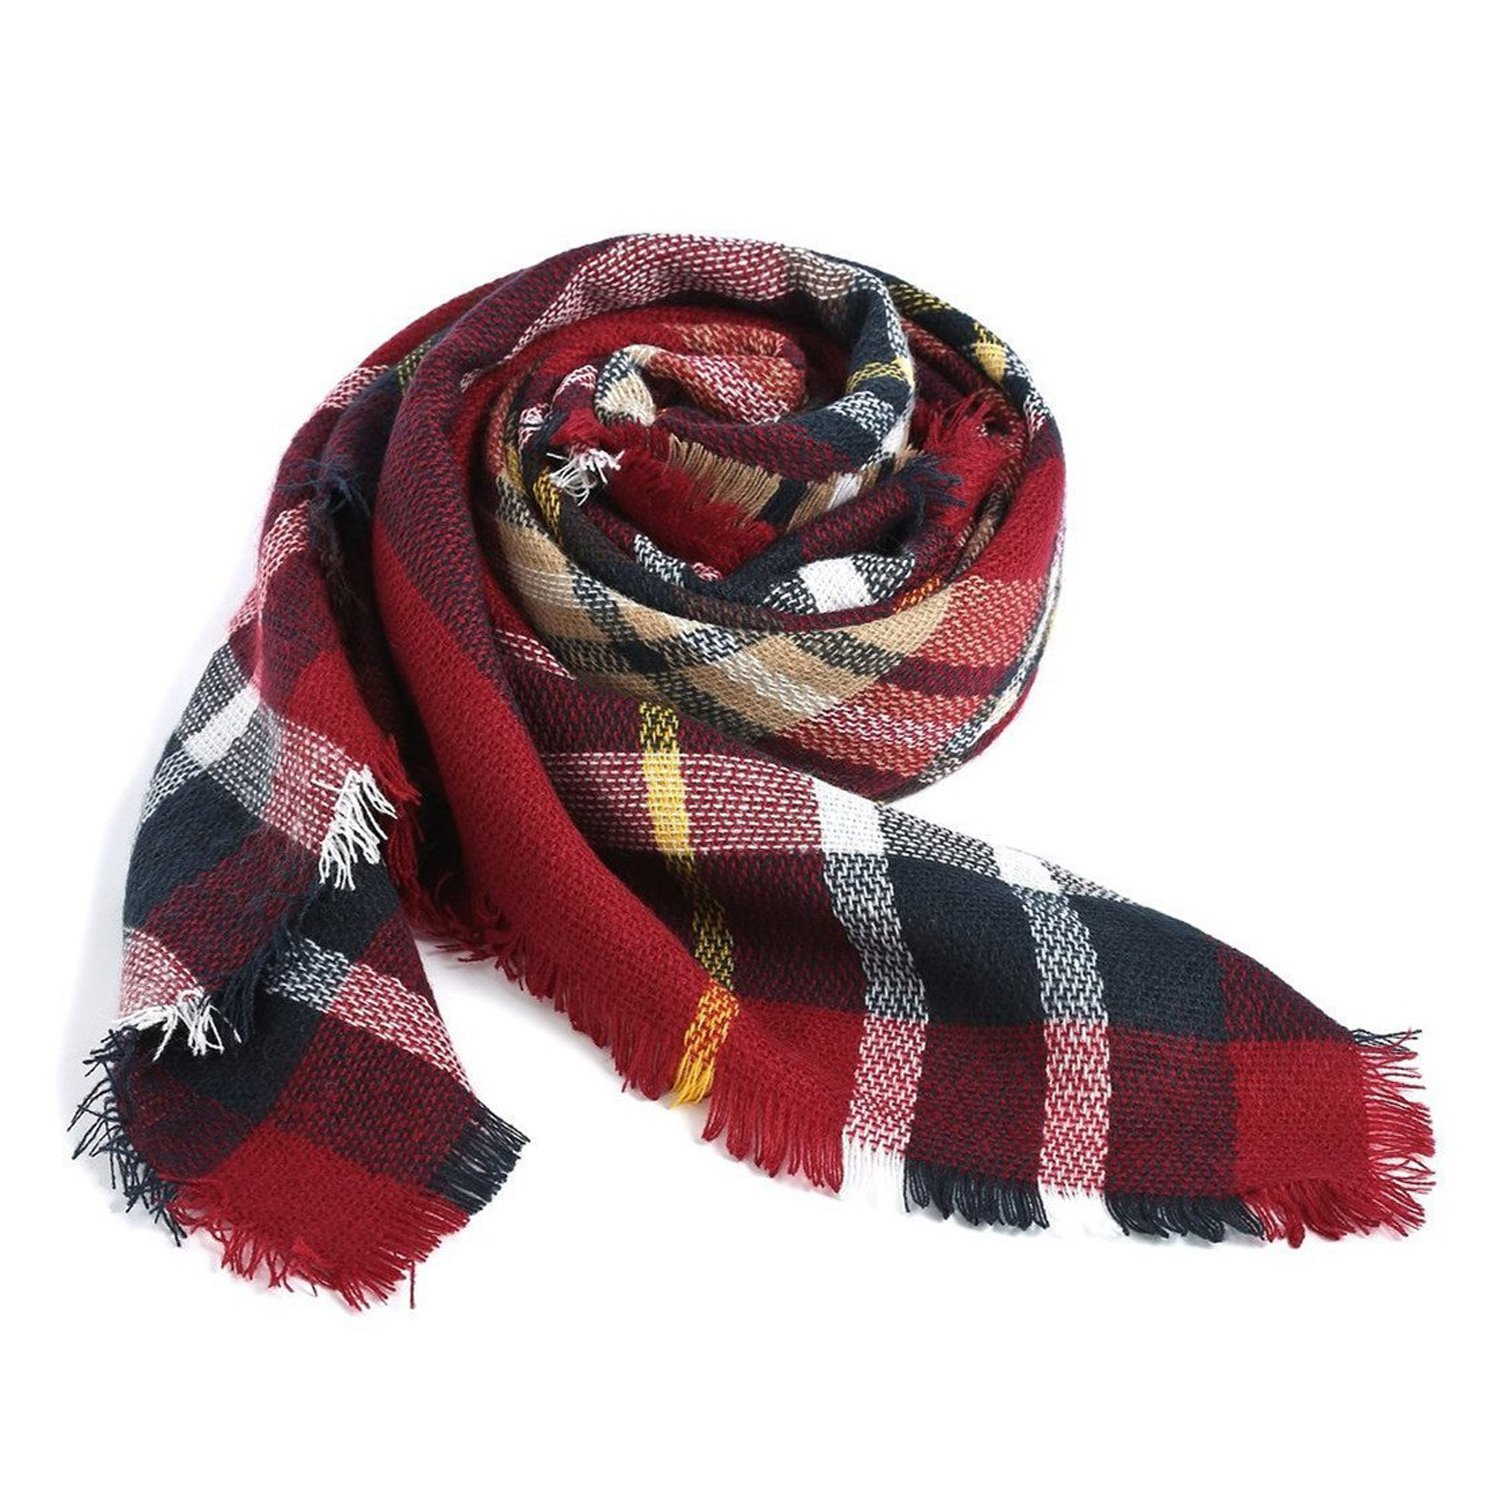 Plaid Tartan Blanket Shawl Scarf,Mutiple Fashion Warm Checked Scarves for Women in Winter Spring as Christmas Gift